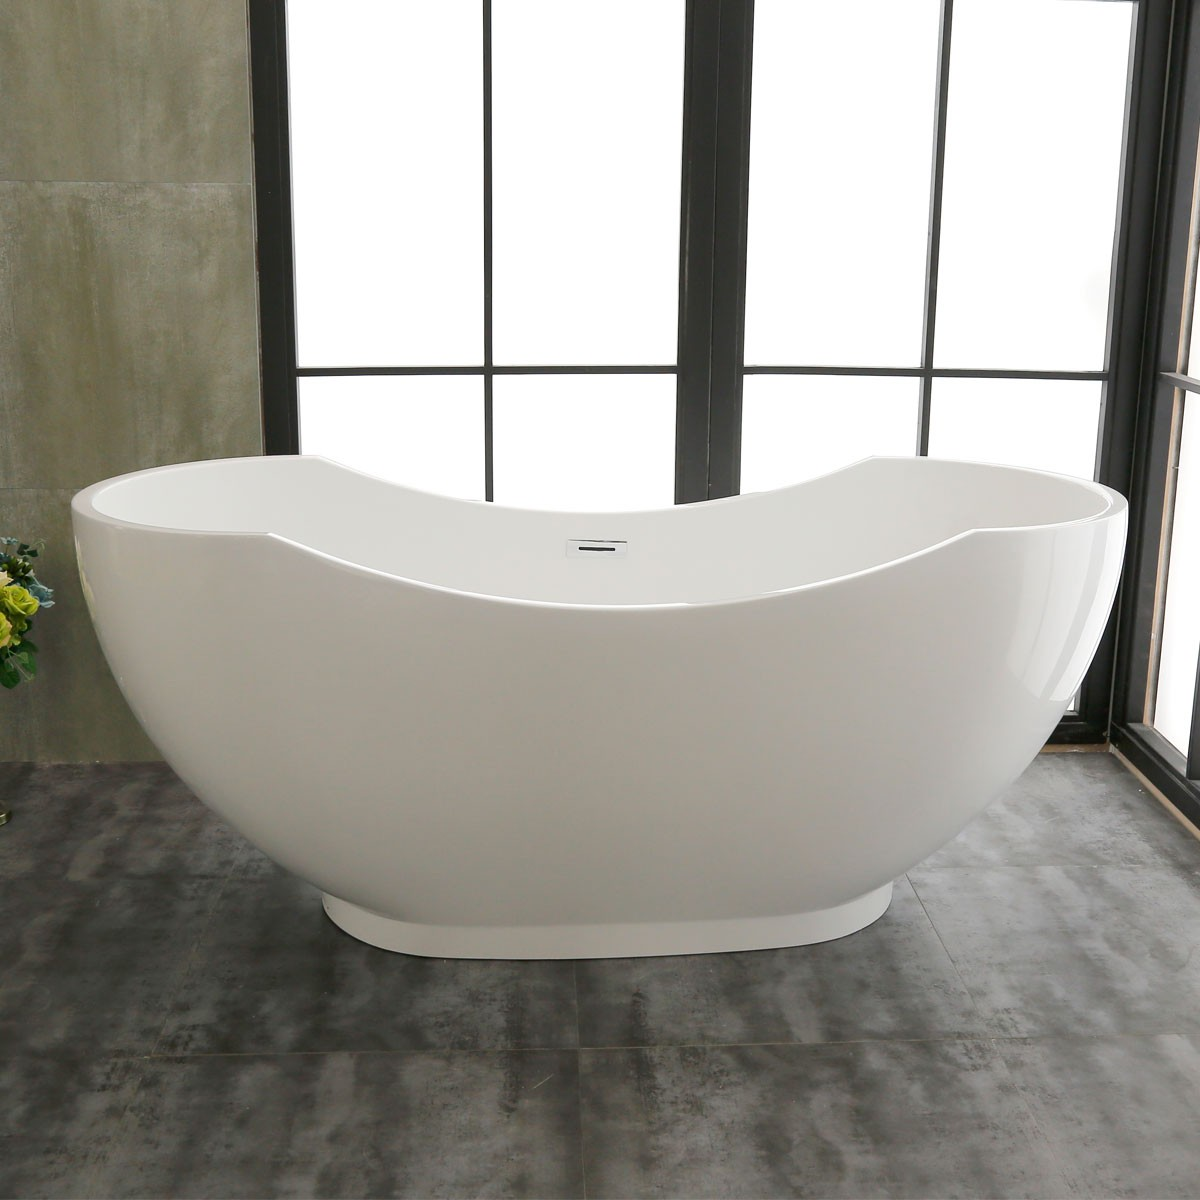 67 In Double Slipper Freestanding Bathtub – Acrylic Pure White (DK-PW-60775)